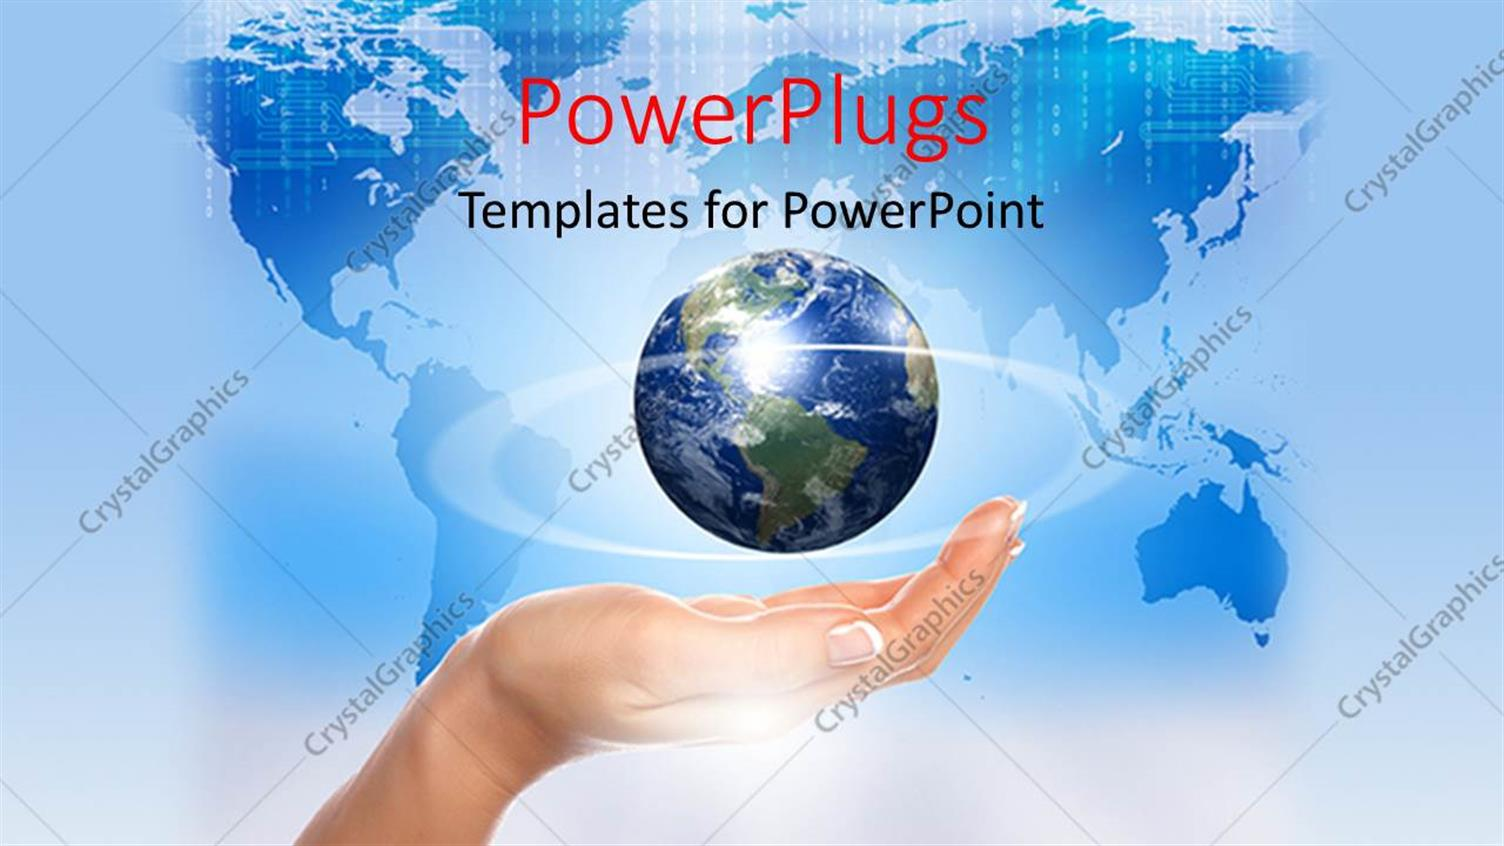 PowerPoint Template Displaying a Hand with a Globe and Map in the Background